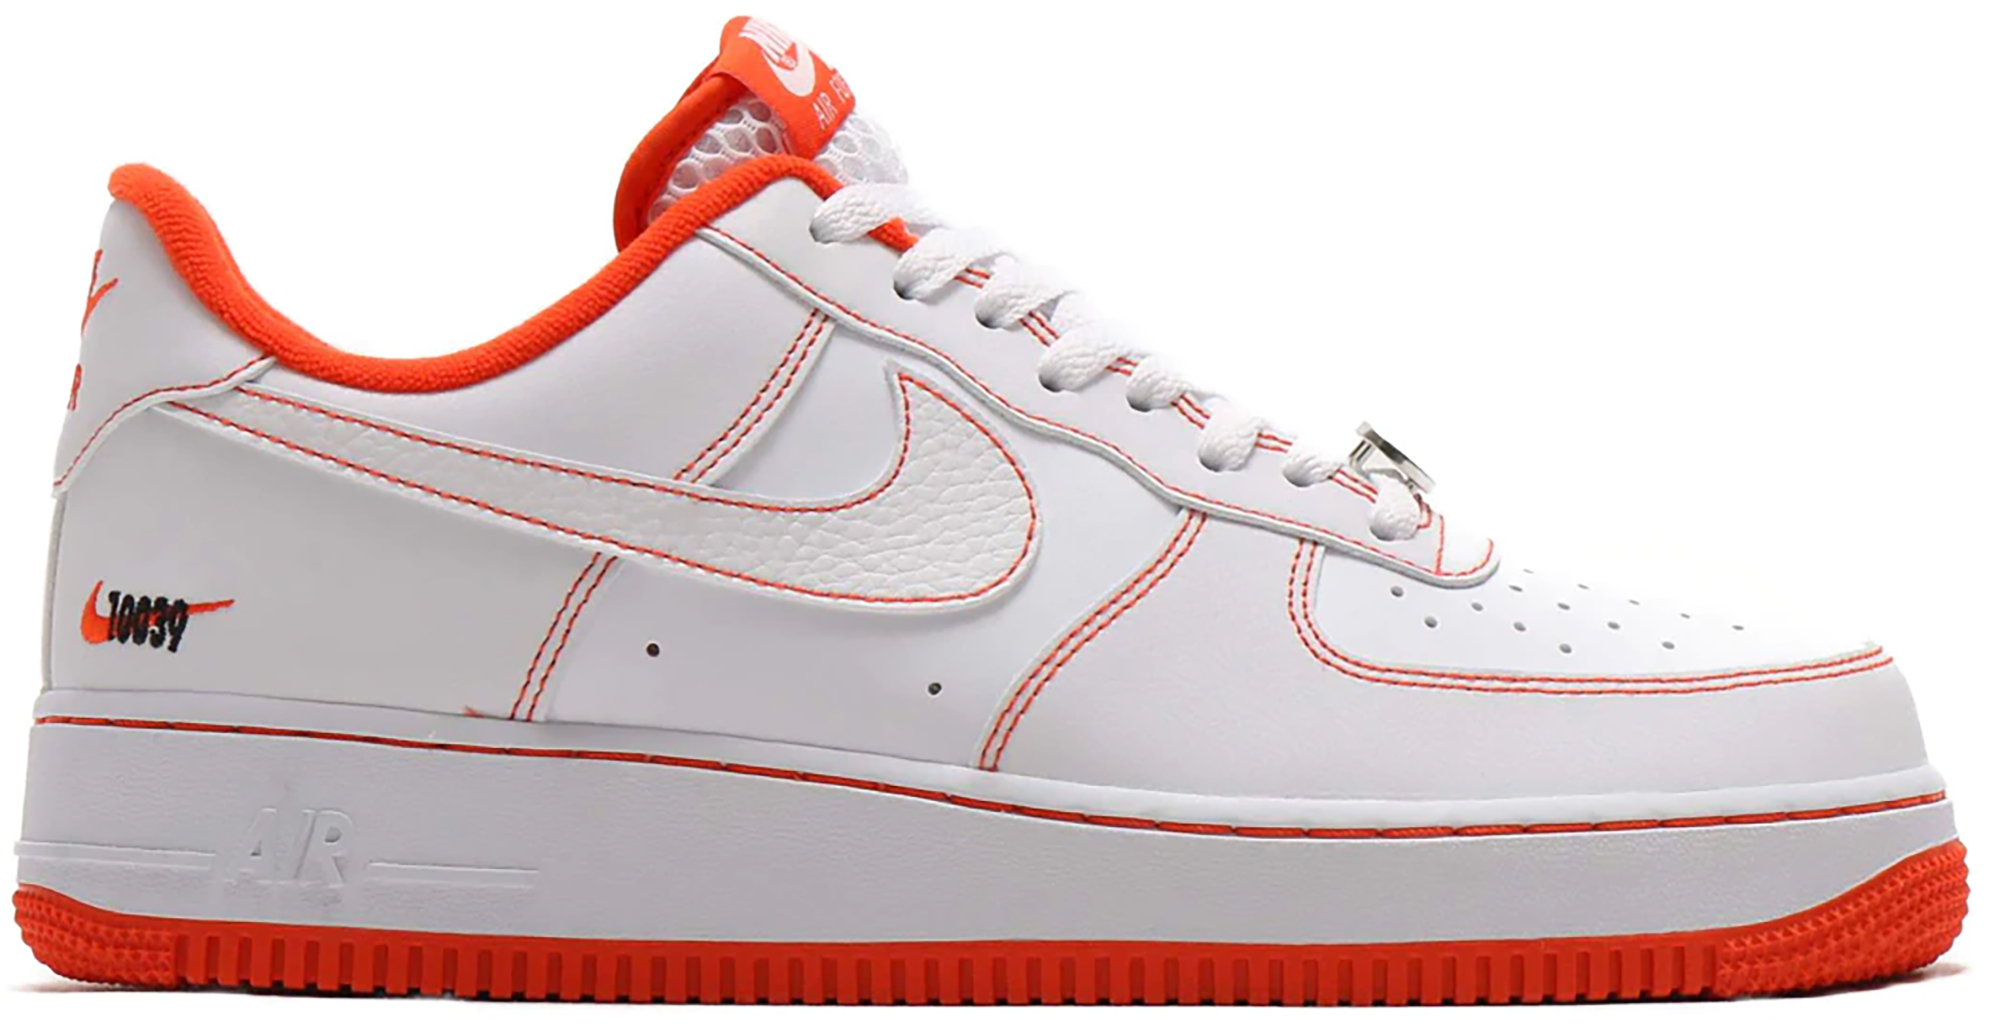 Nike Air Force 1 Low Rucker Park (2020